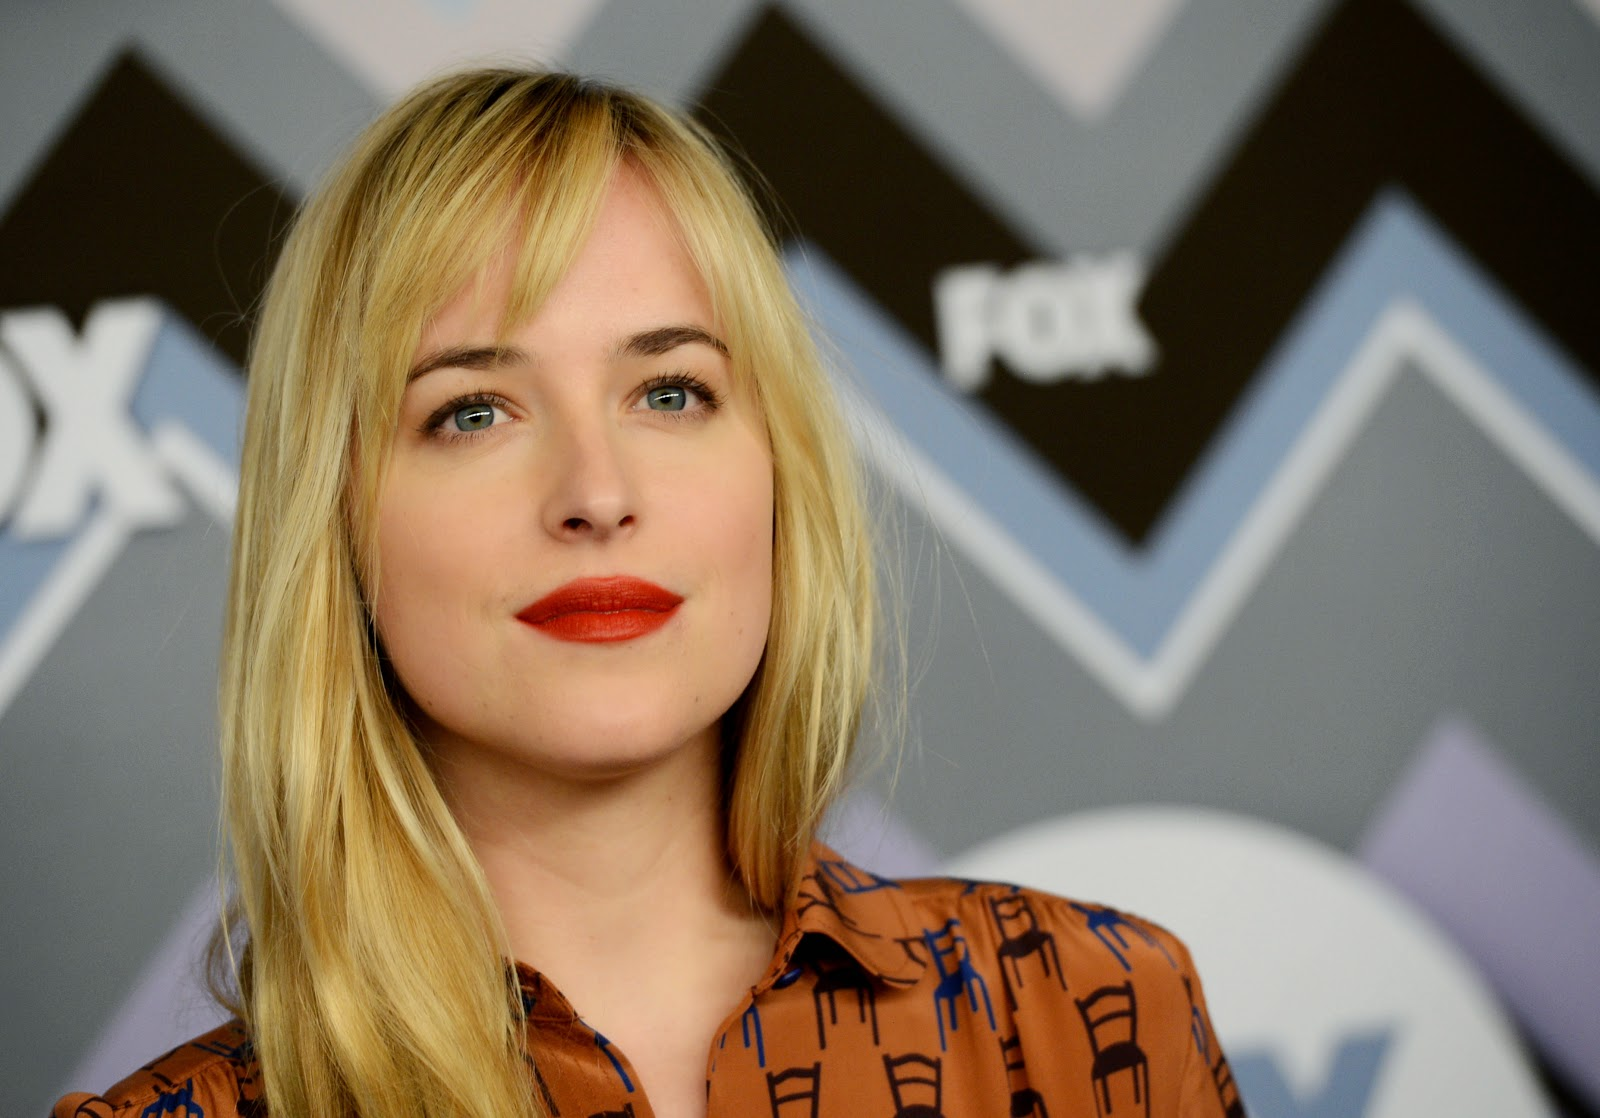 Fantastic Images of Dakota Johnson | HD Wallpapers of Dakota Johnson